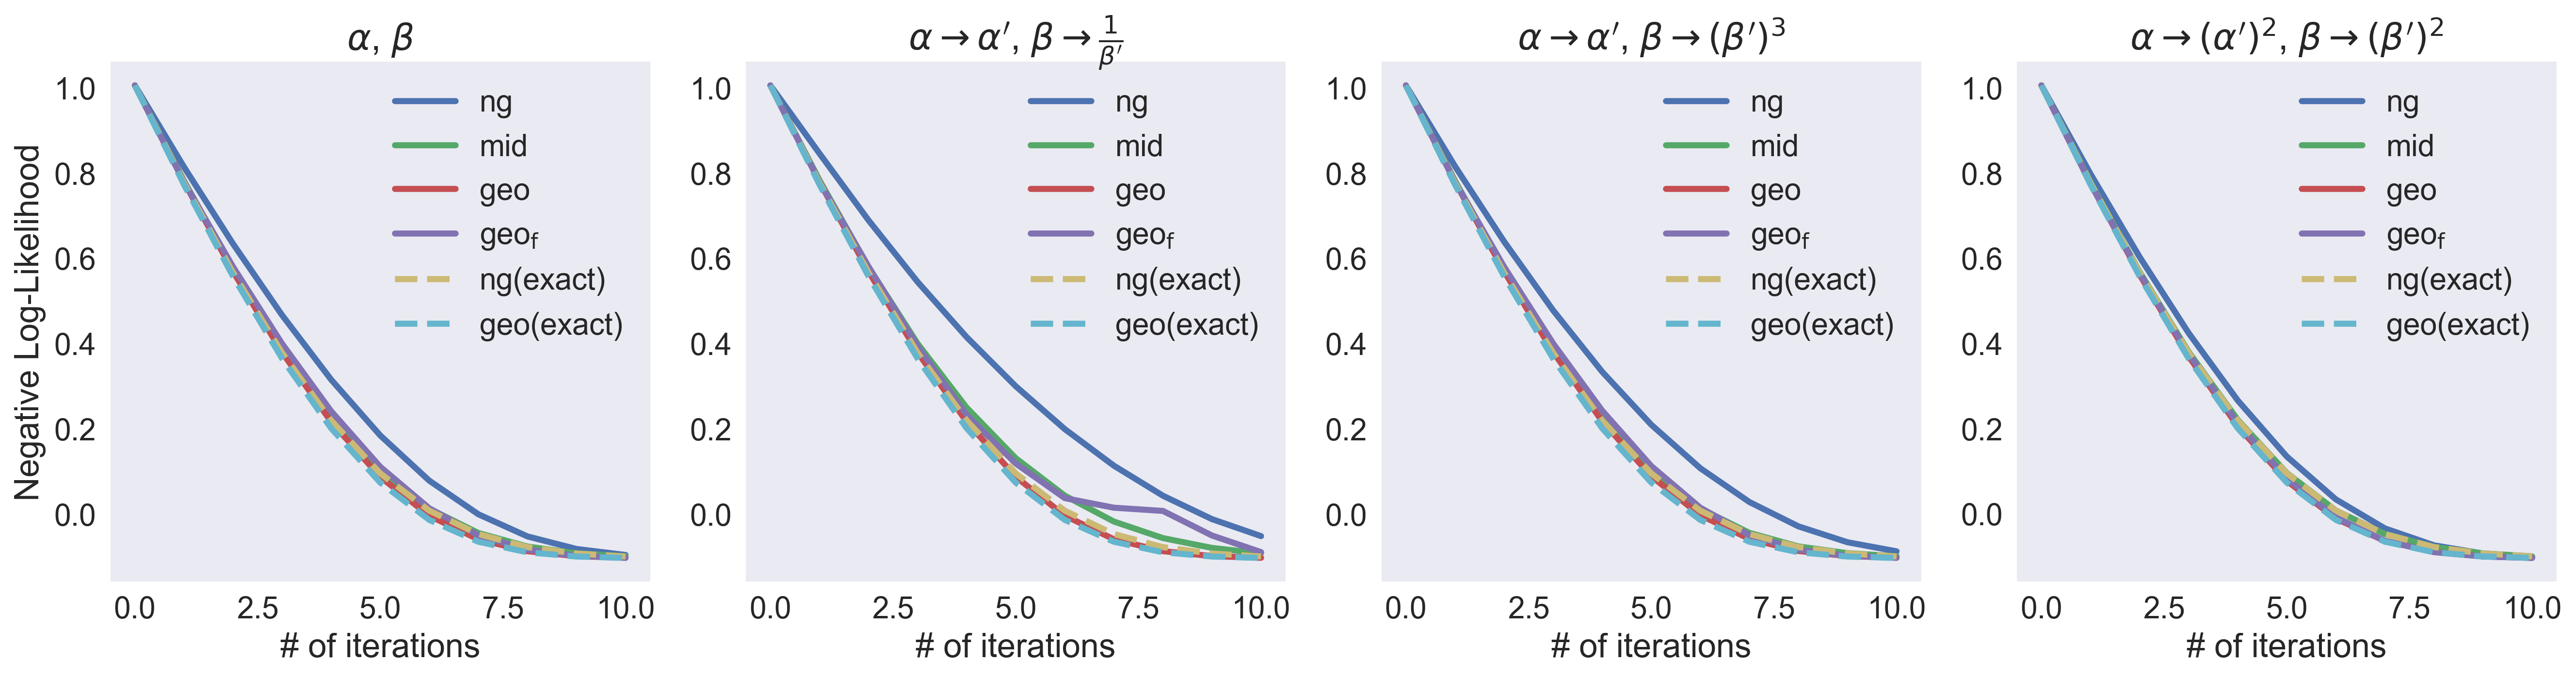 The effect of re-parameterizations on algorithms fitting a univariate Gamma distribution. Titles indicate which parameterization was used.